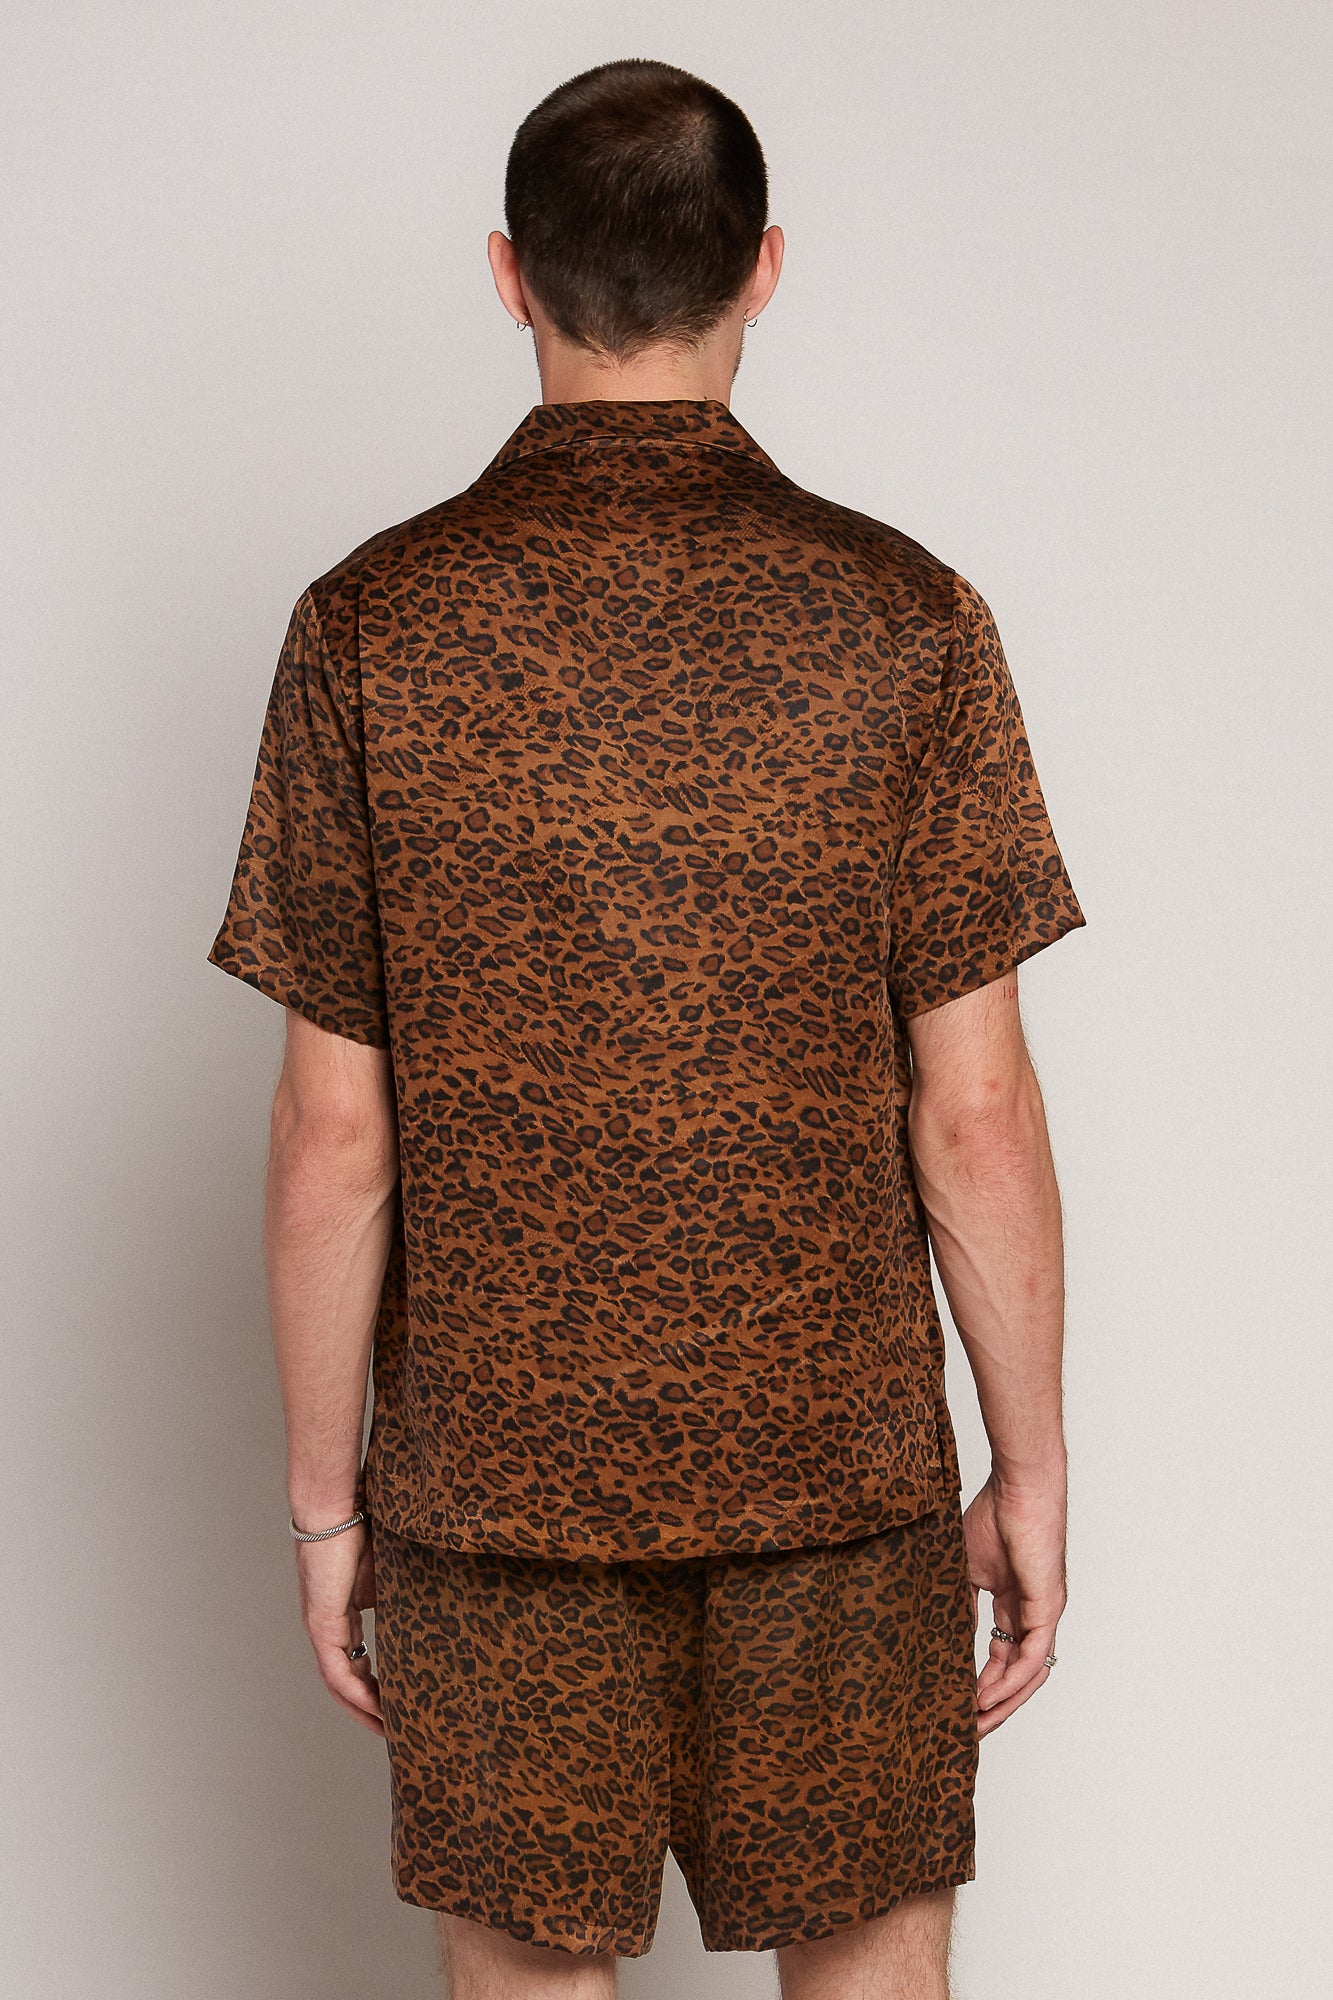 Leopard Camp Collar Shirt